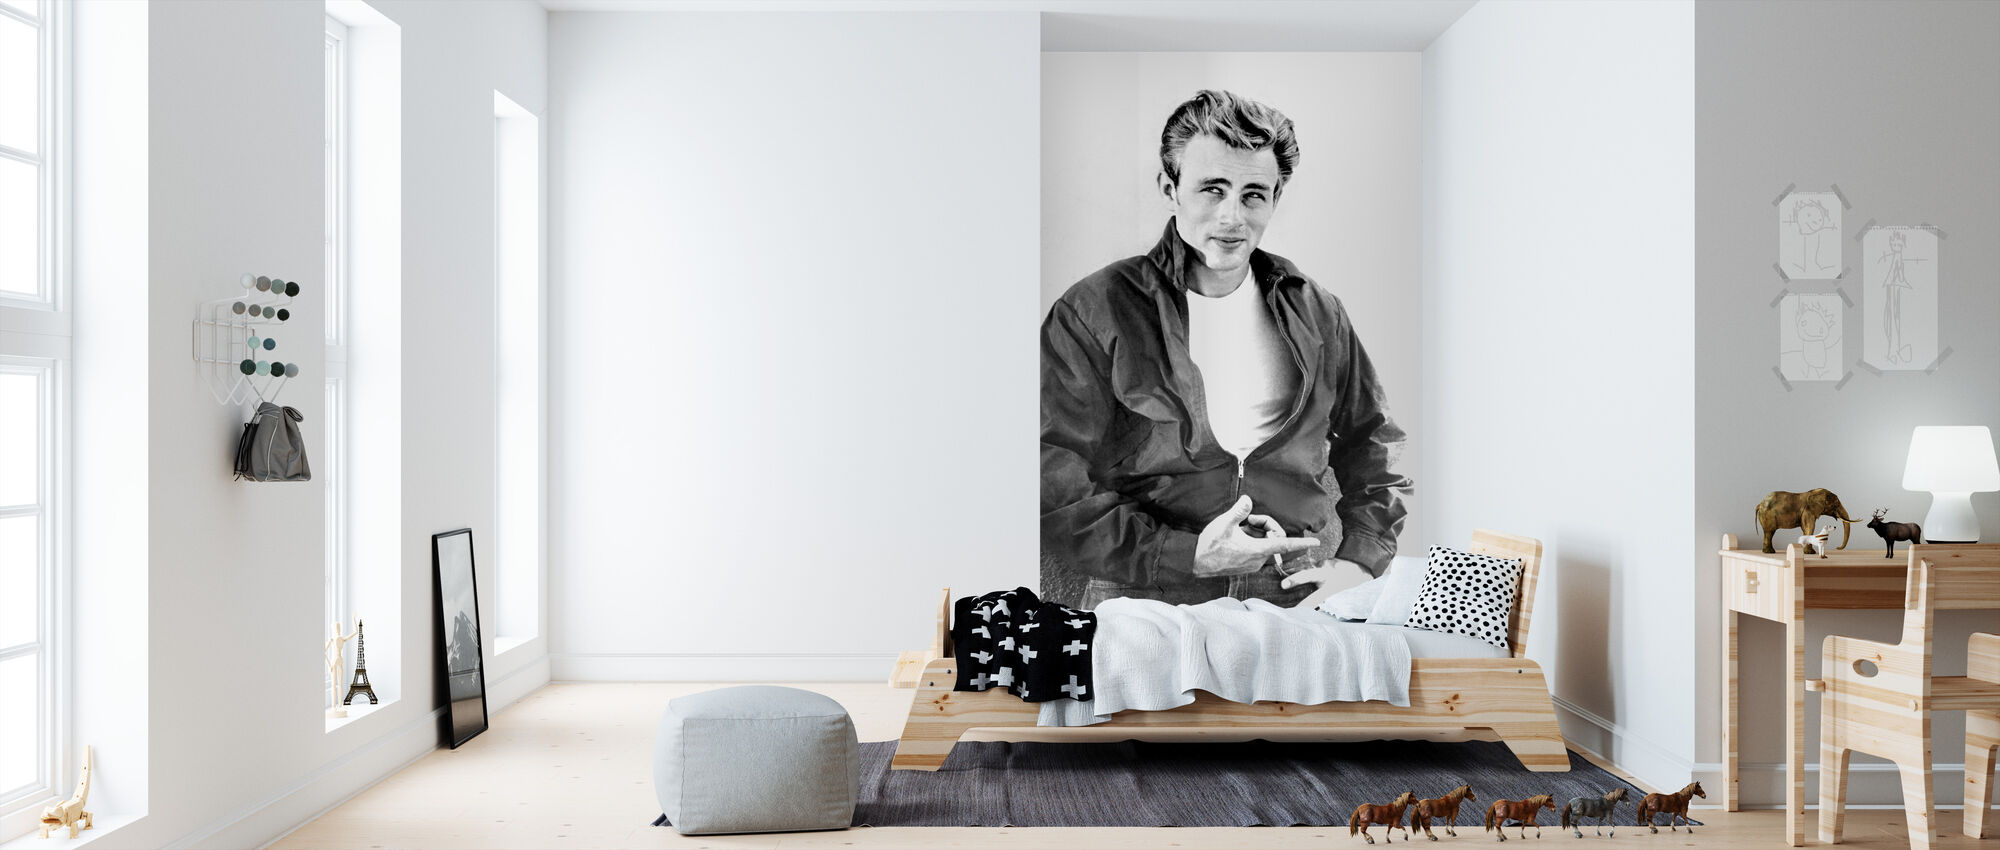 Rebel without a Cause - Wallpaper - Kids Room